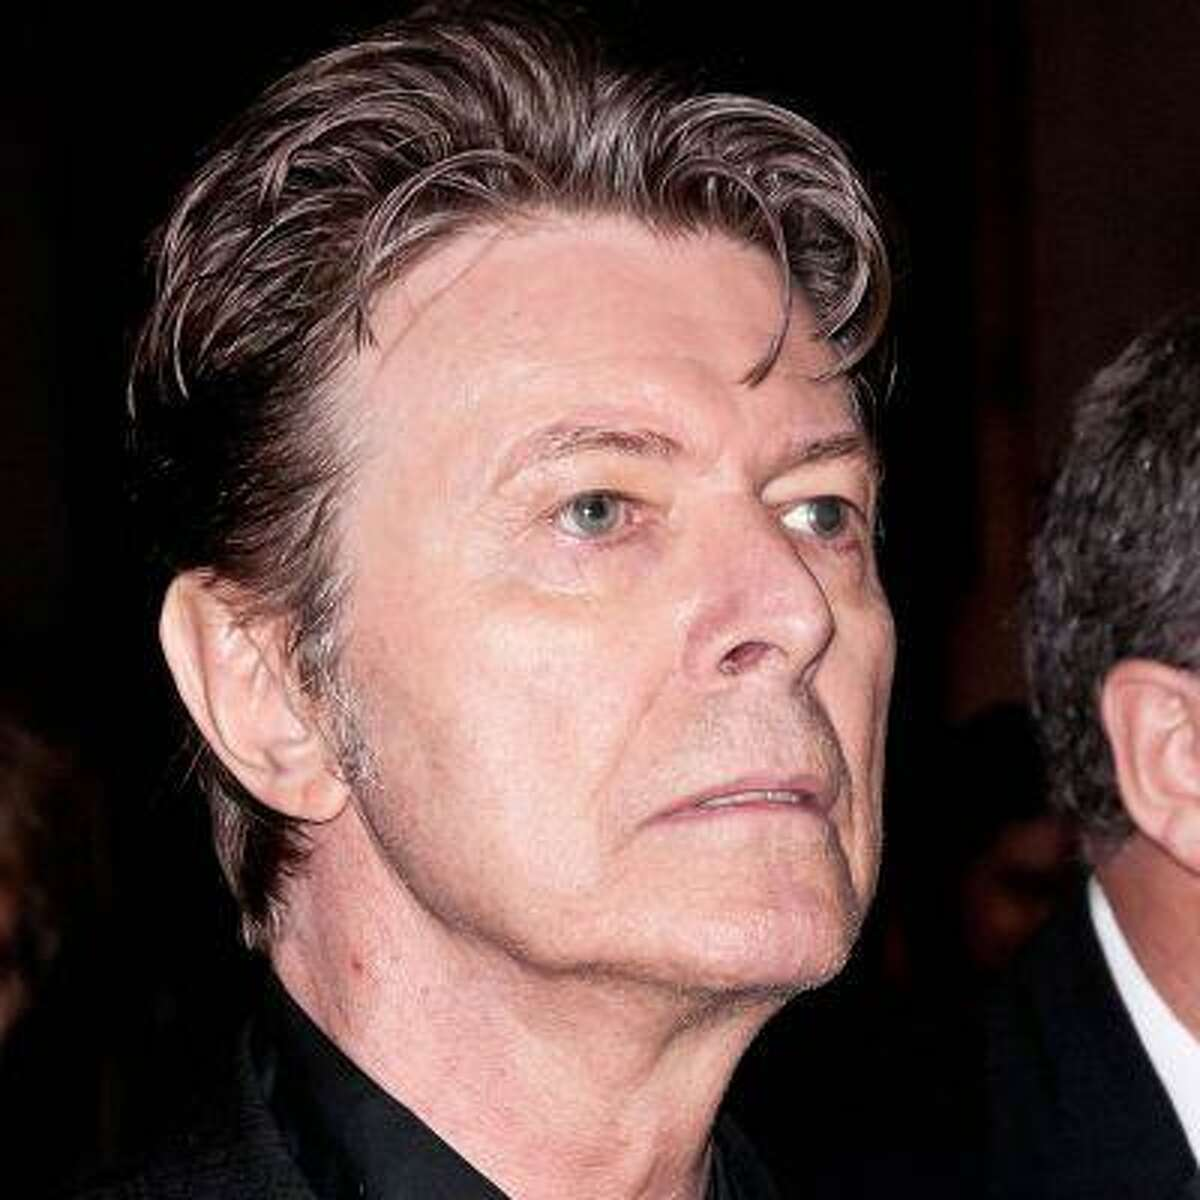 David Bowie arriving at an event in New York City New York City, USA - 28.04.11 Mandatory Credit: C.Smith/ WENN.com